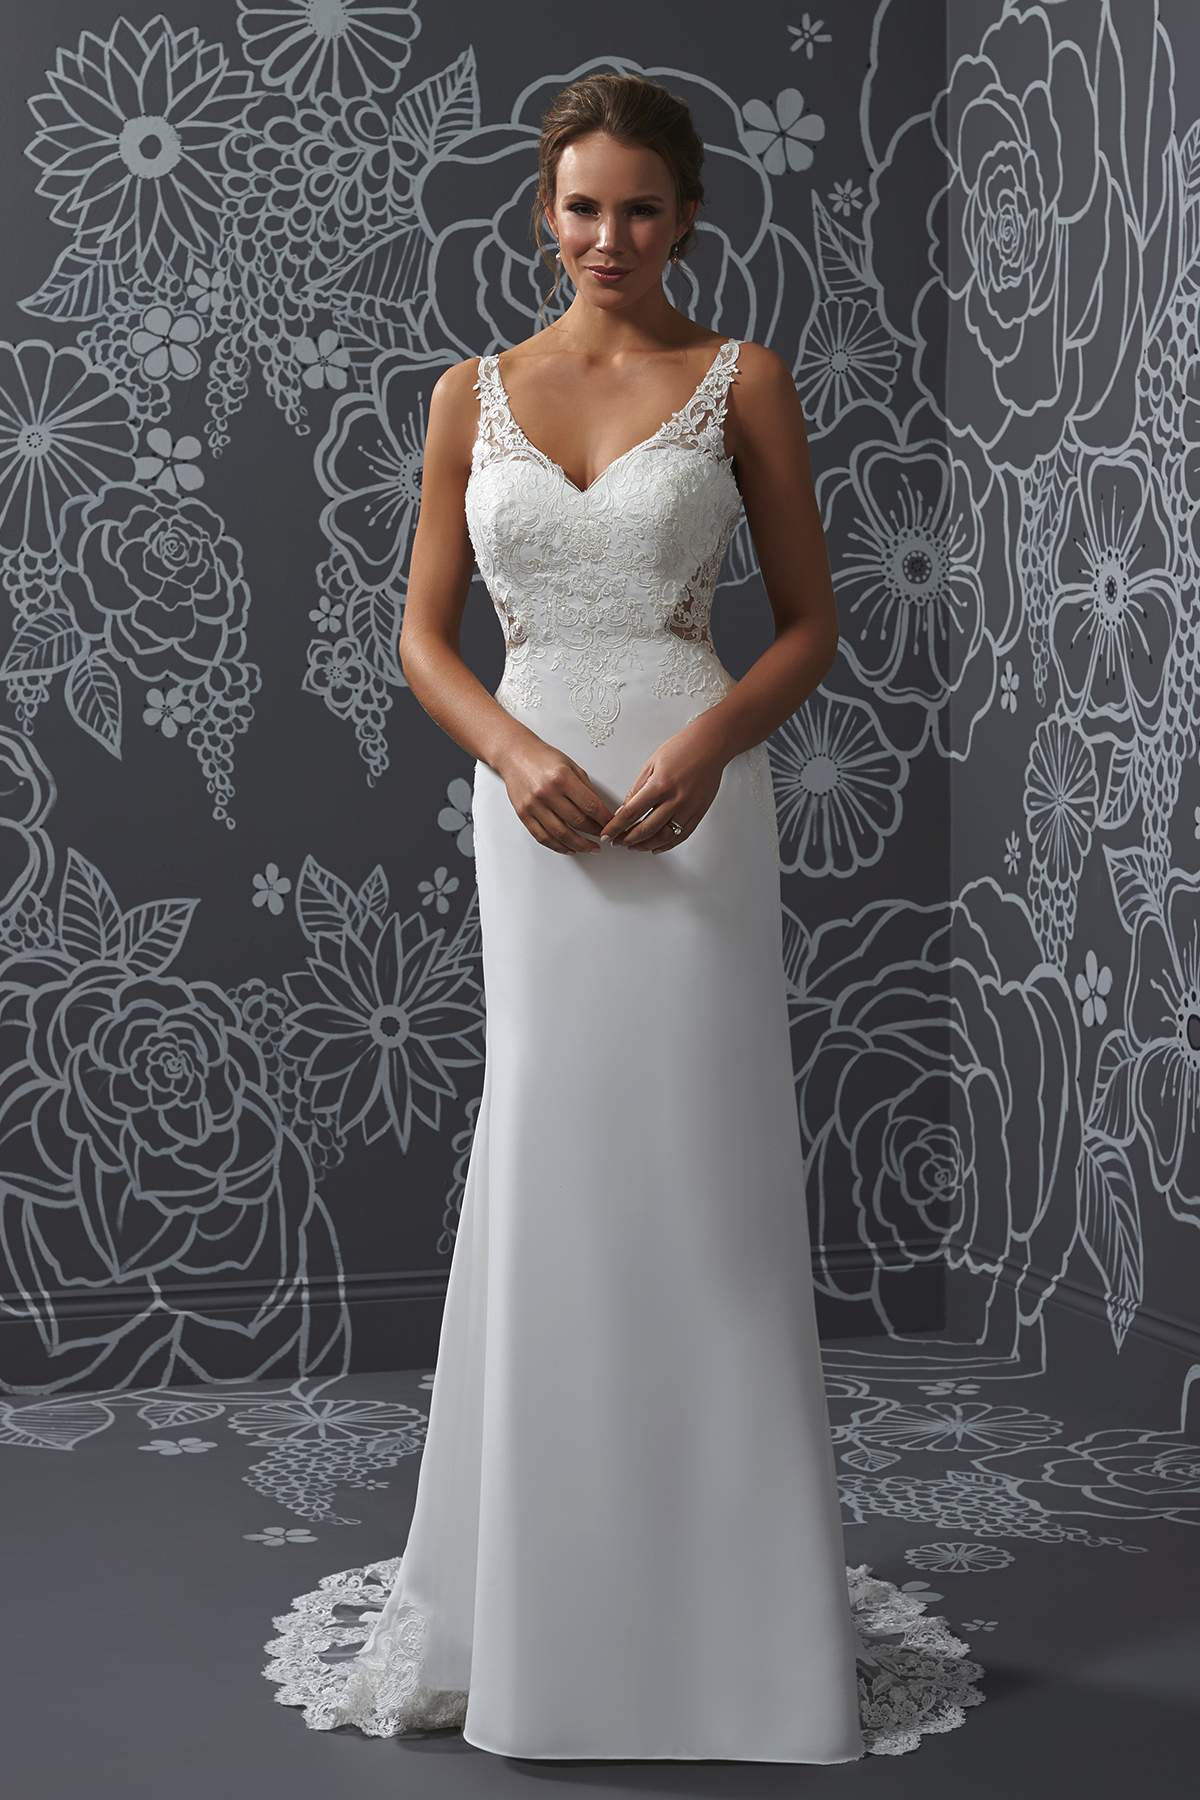 Rhianna By Romantica Of Devon Find Your Dream Dress